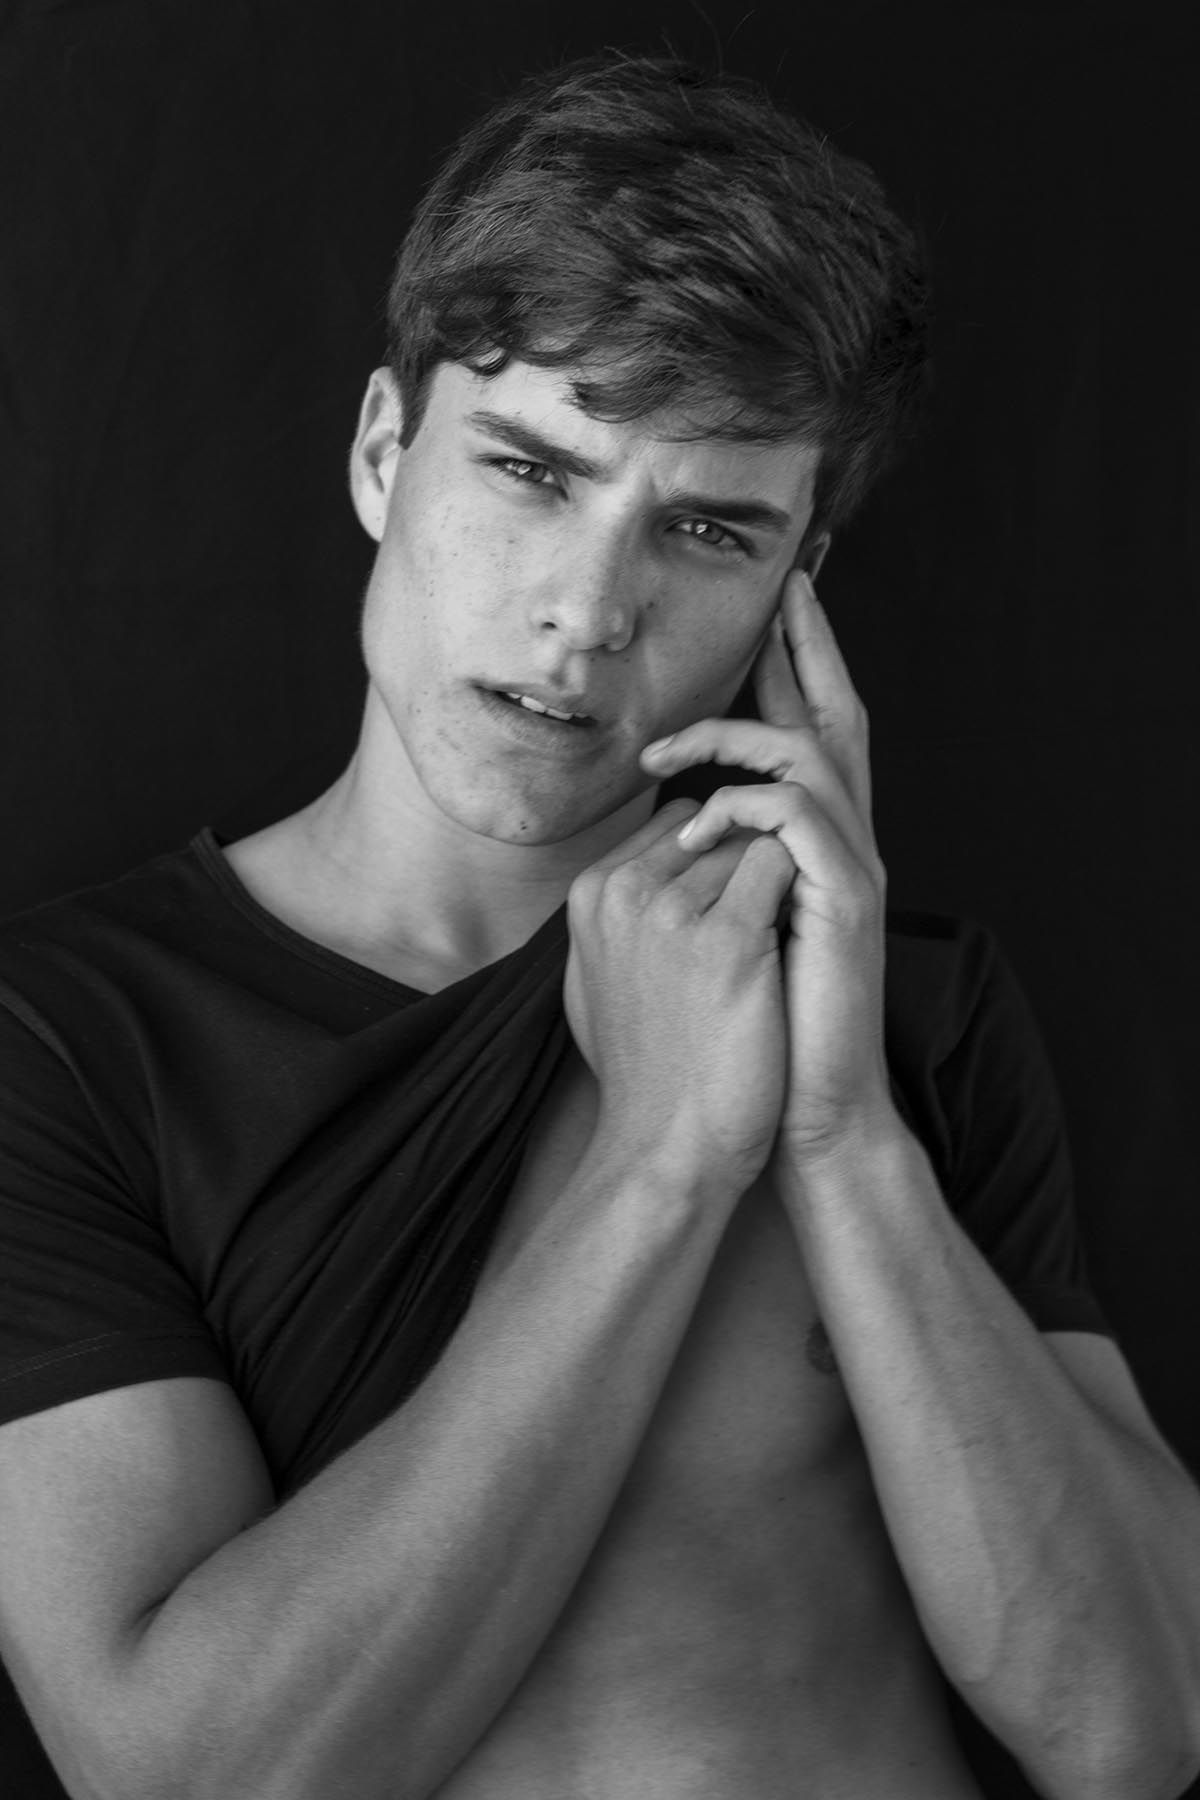 Pedro Maia by Gilson de Rezendeh for Brazilian Male Model